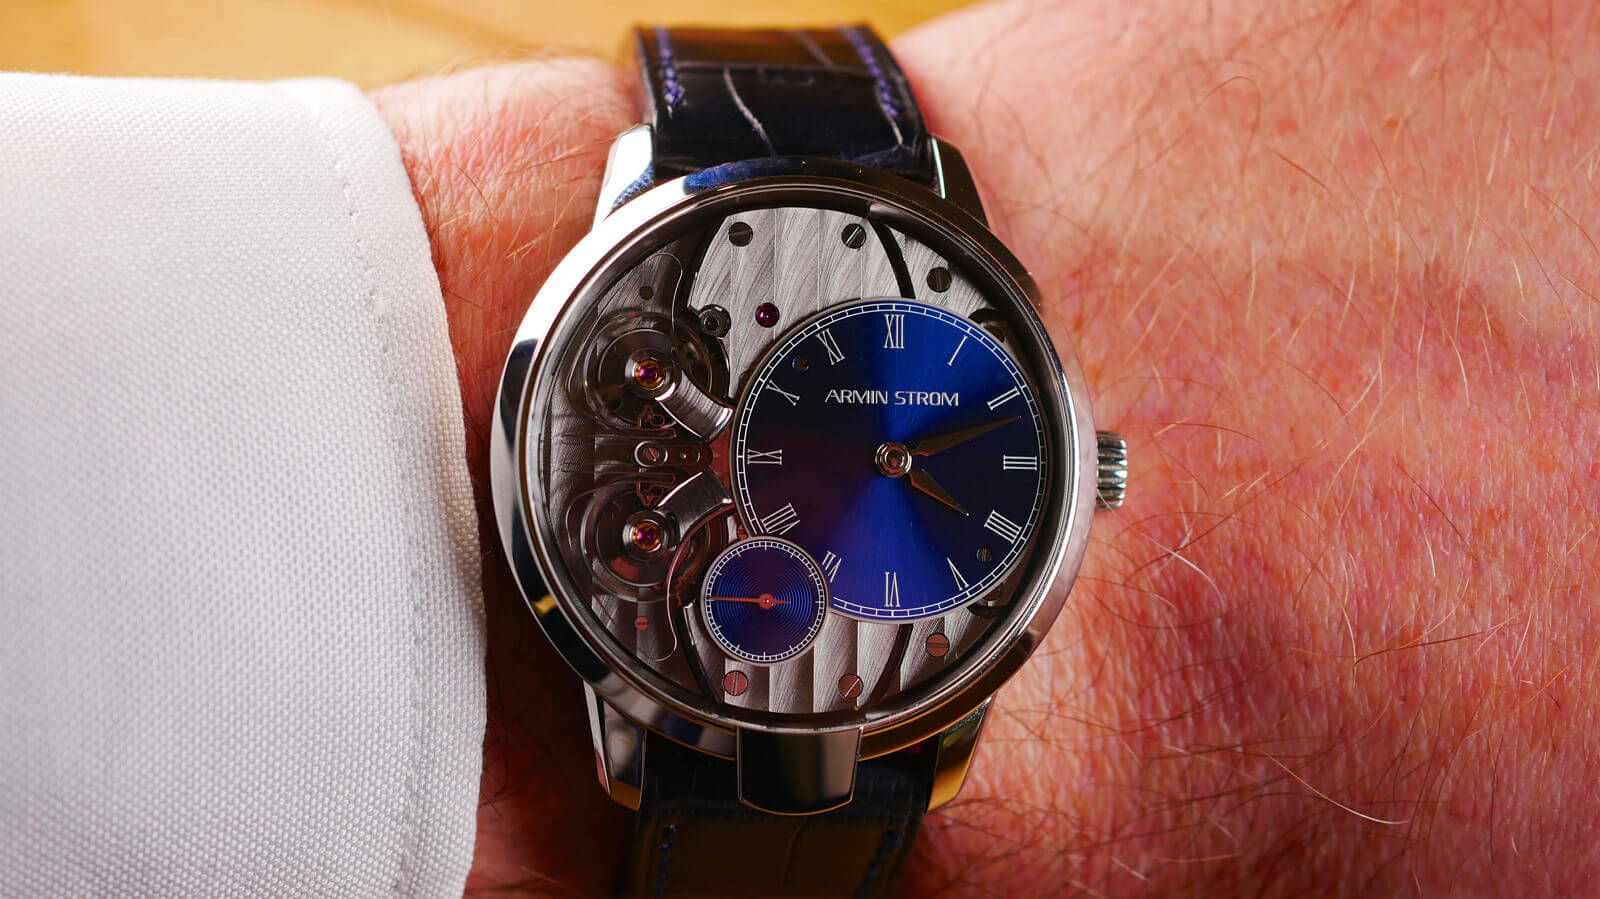 Armin Strom Pure Resonance - hand-wound watch with two balance springs and a resonance clutch spring